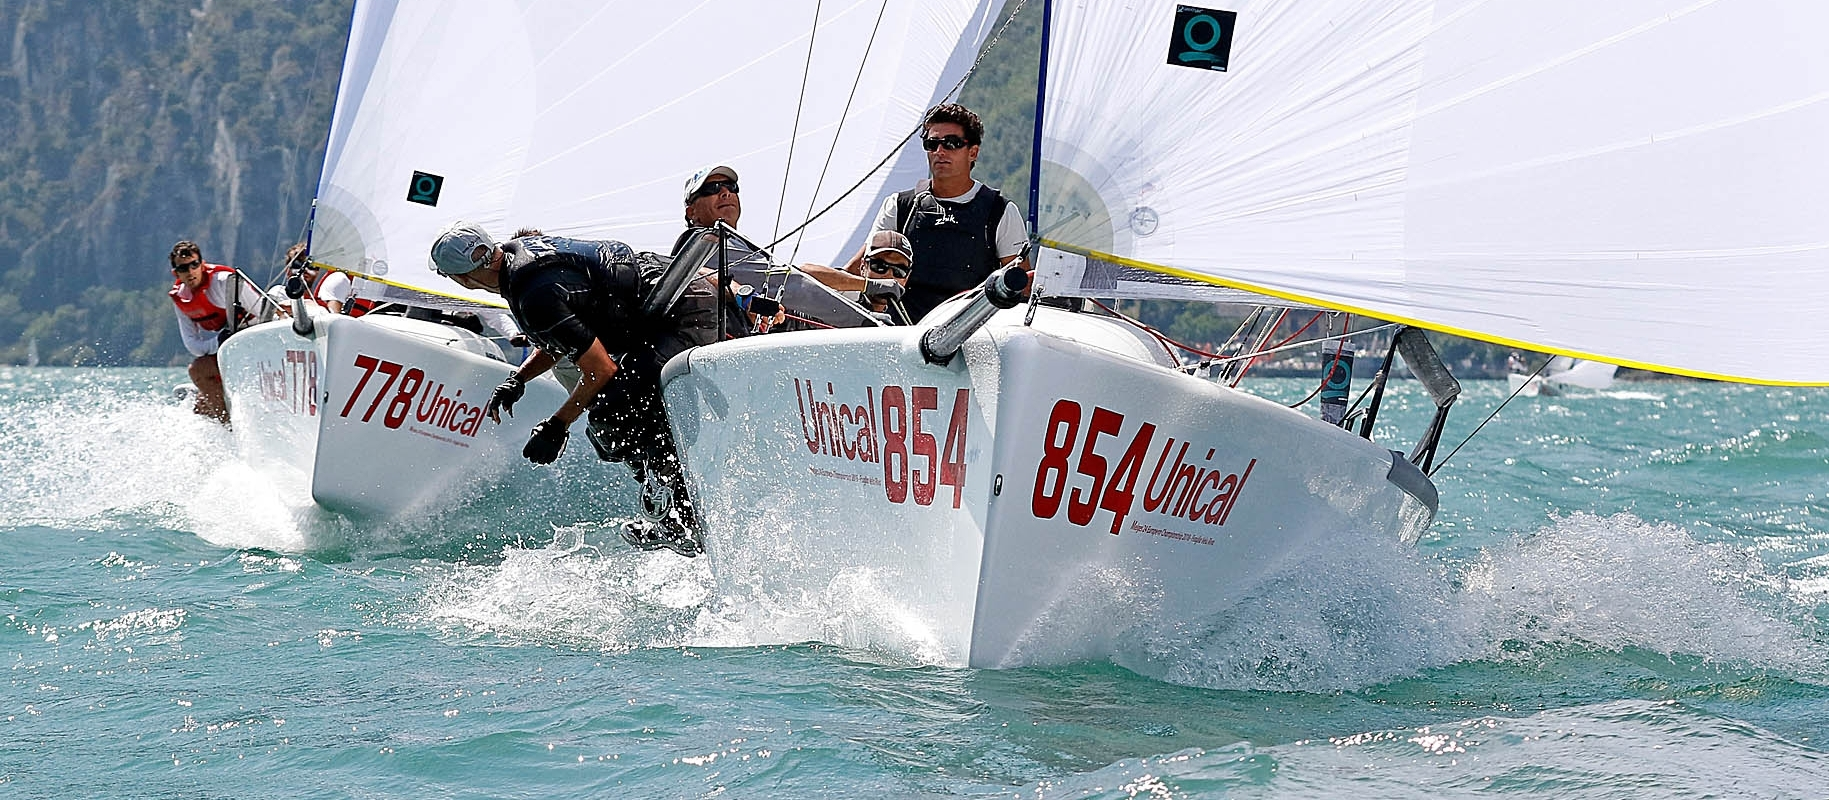 Maidollis ITA854 and Taki 4 ITA778 - 2018 European Overall and Corinthian Champions